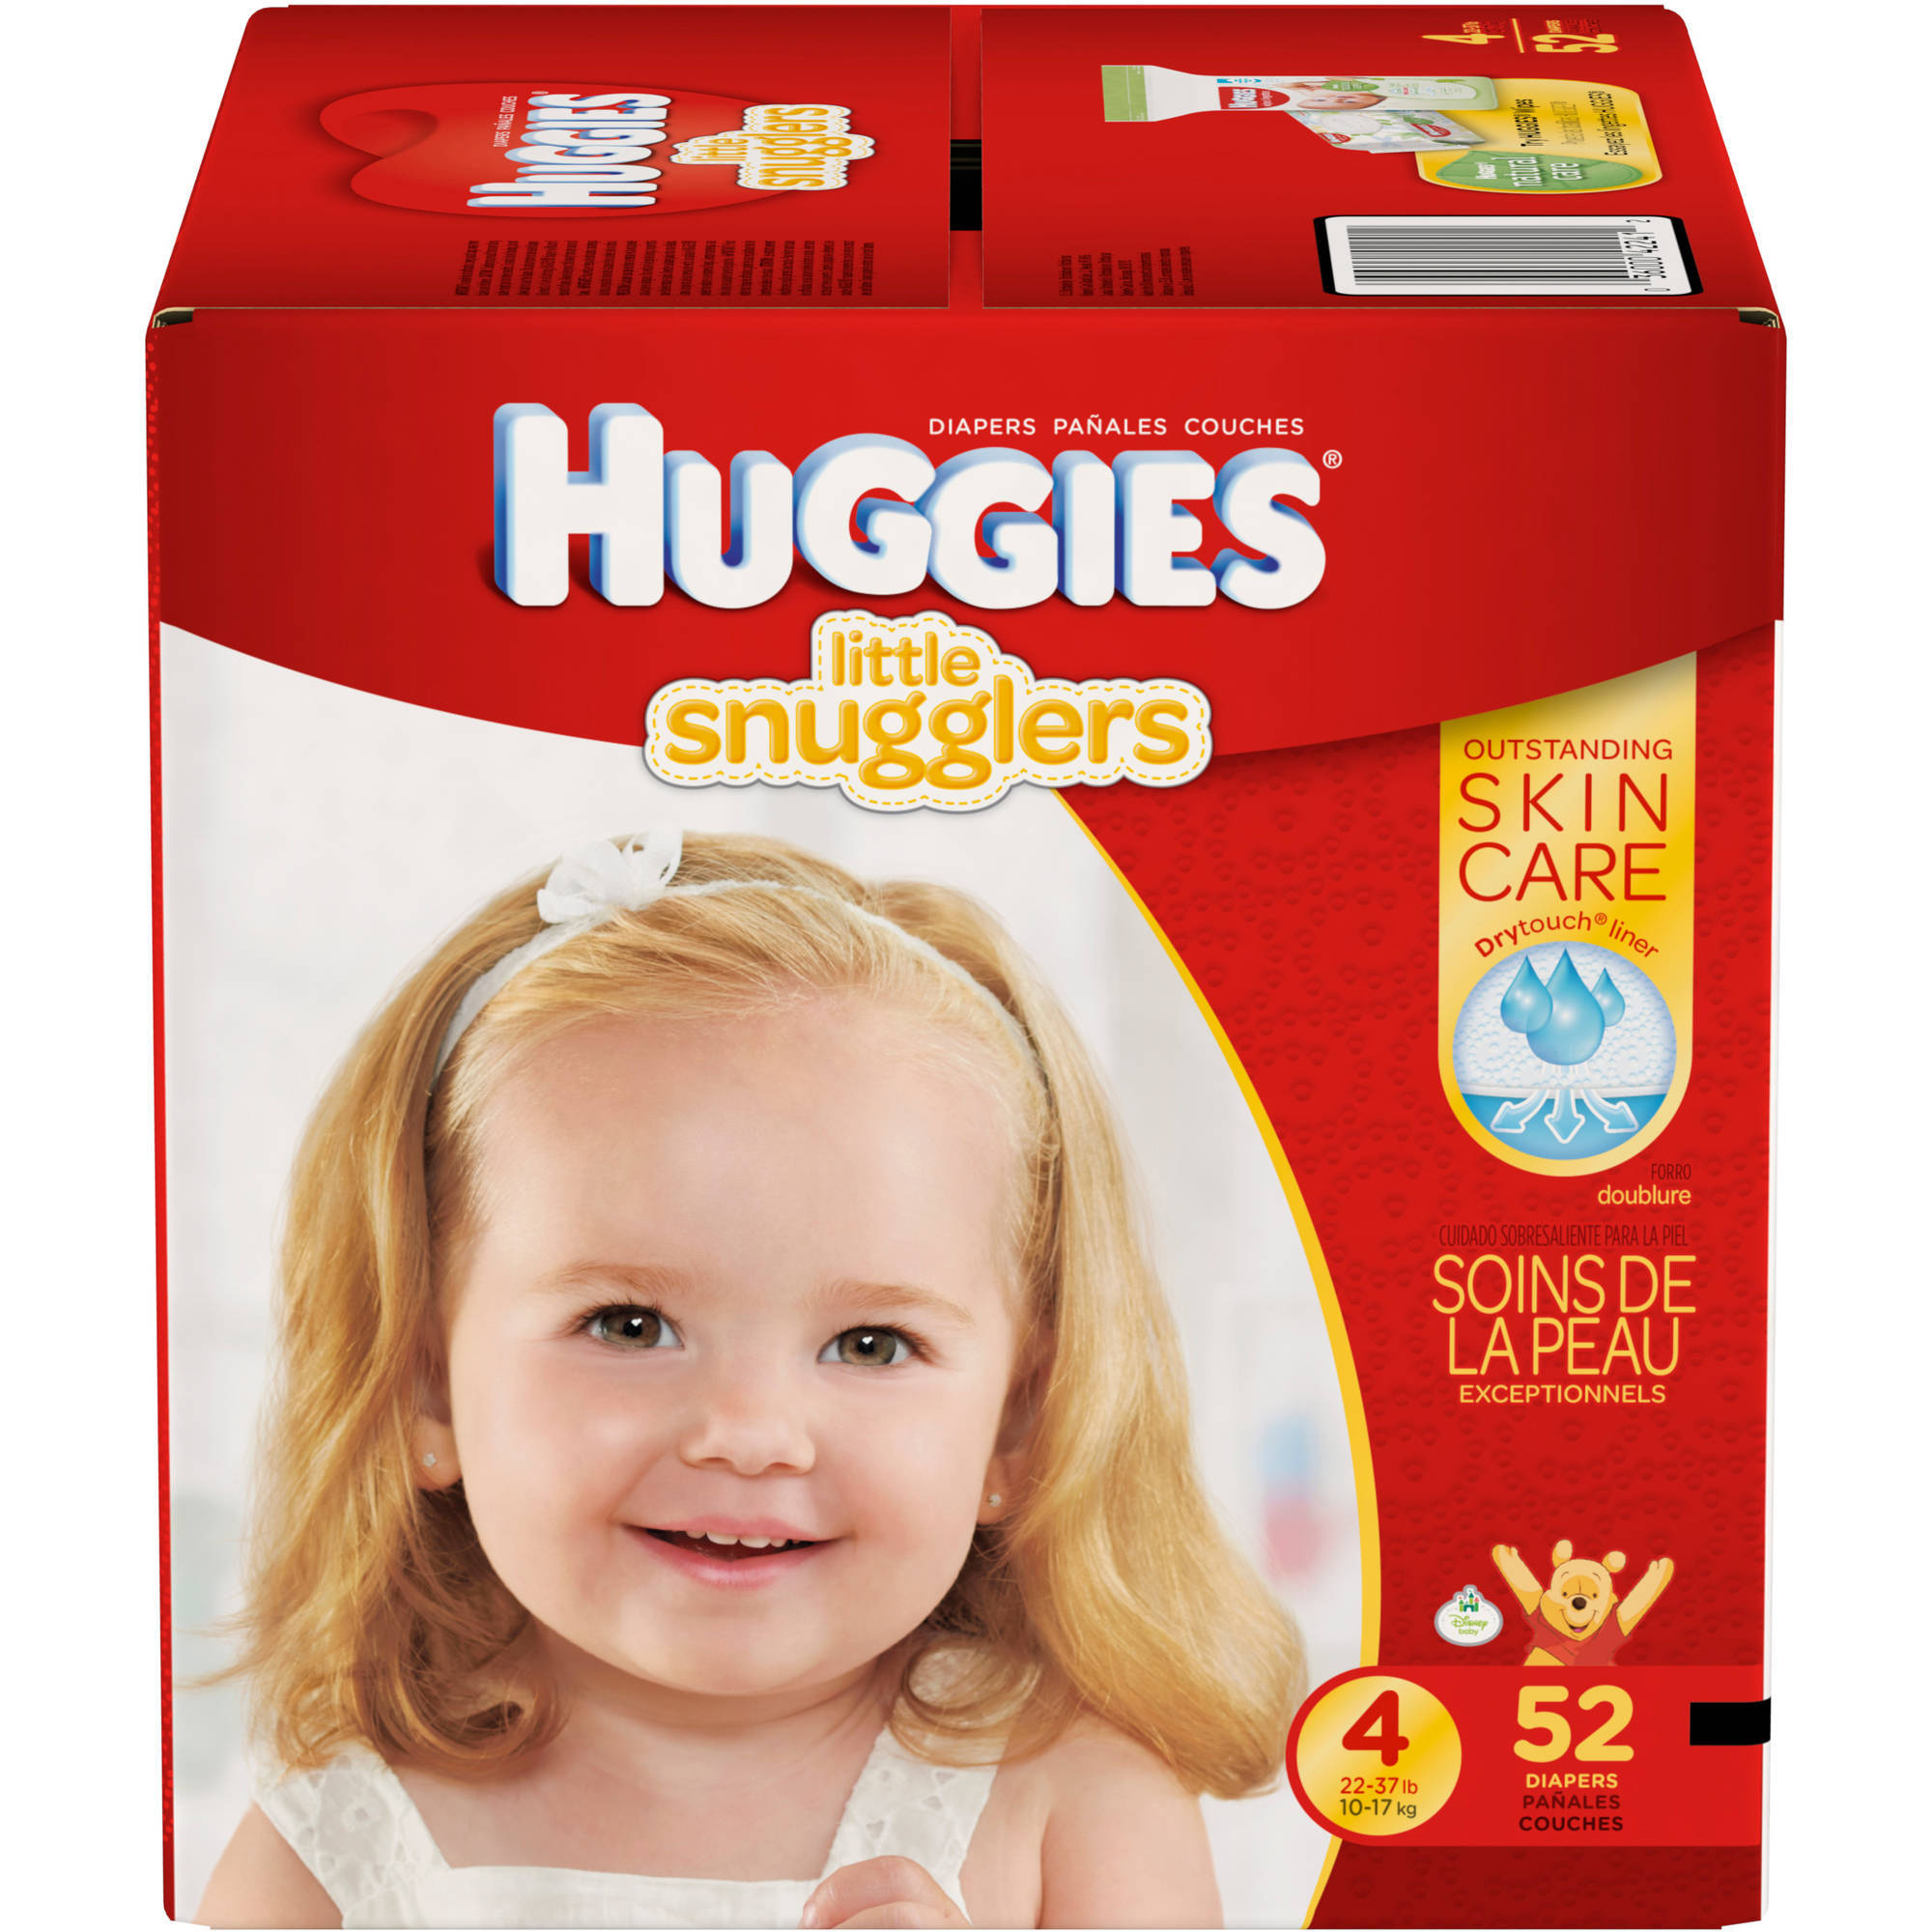 HUGGIES Little Snugglers Diapers, Big Pack (Choose Your Size)